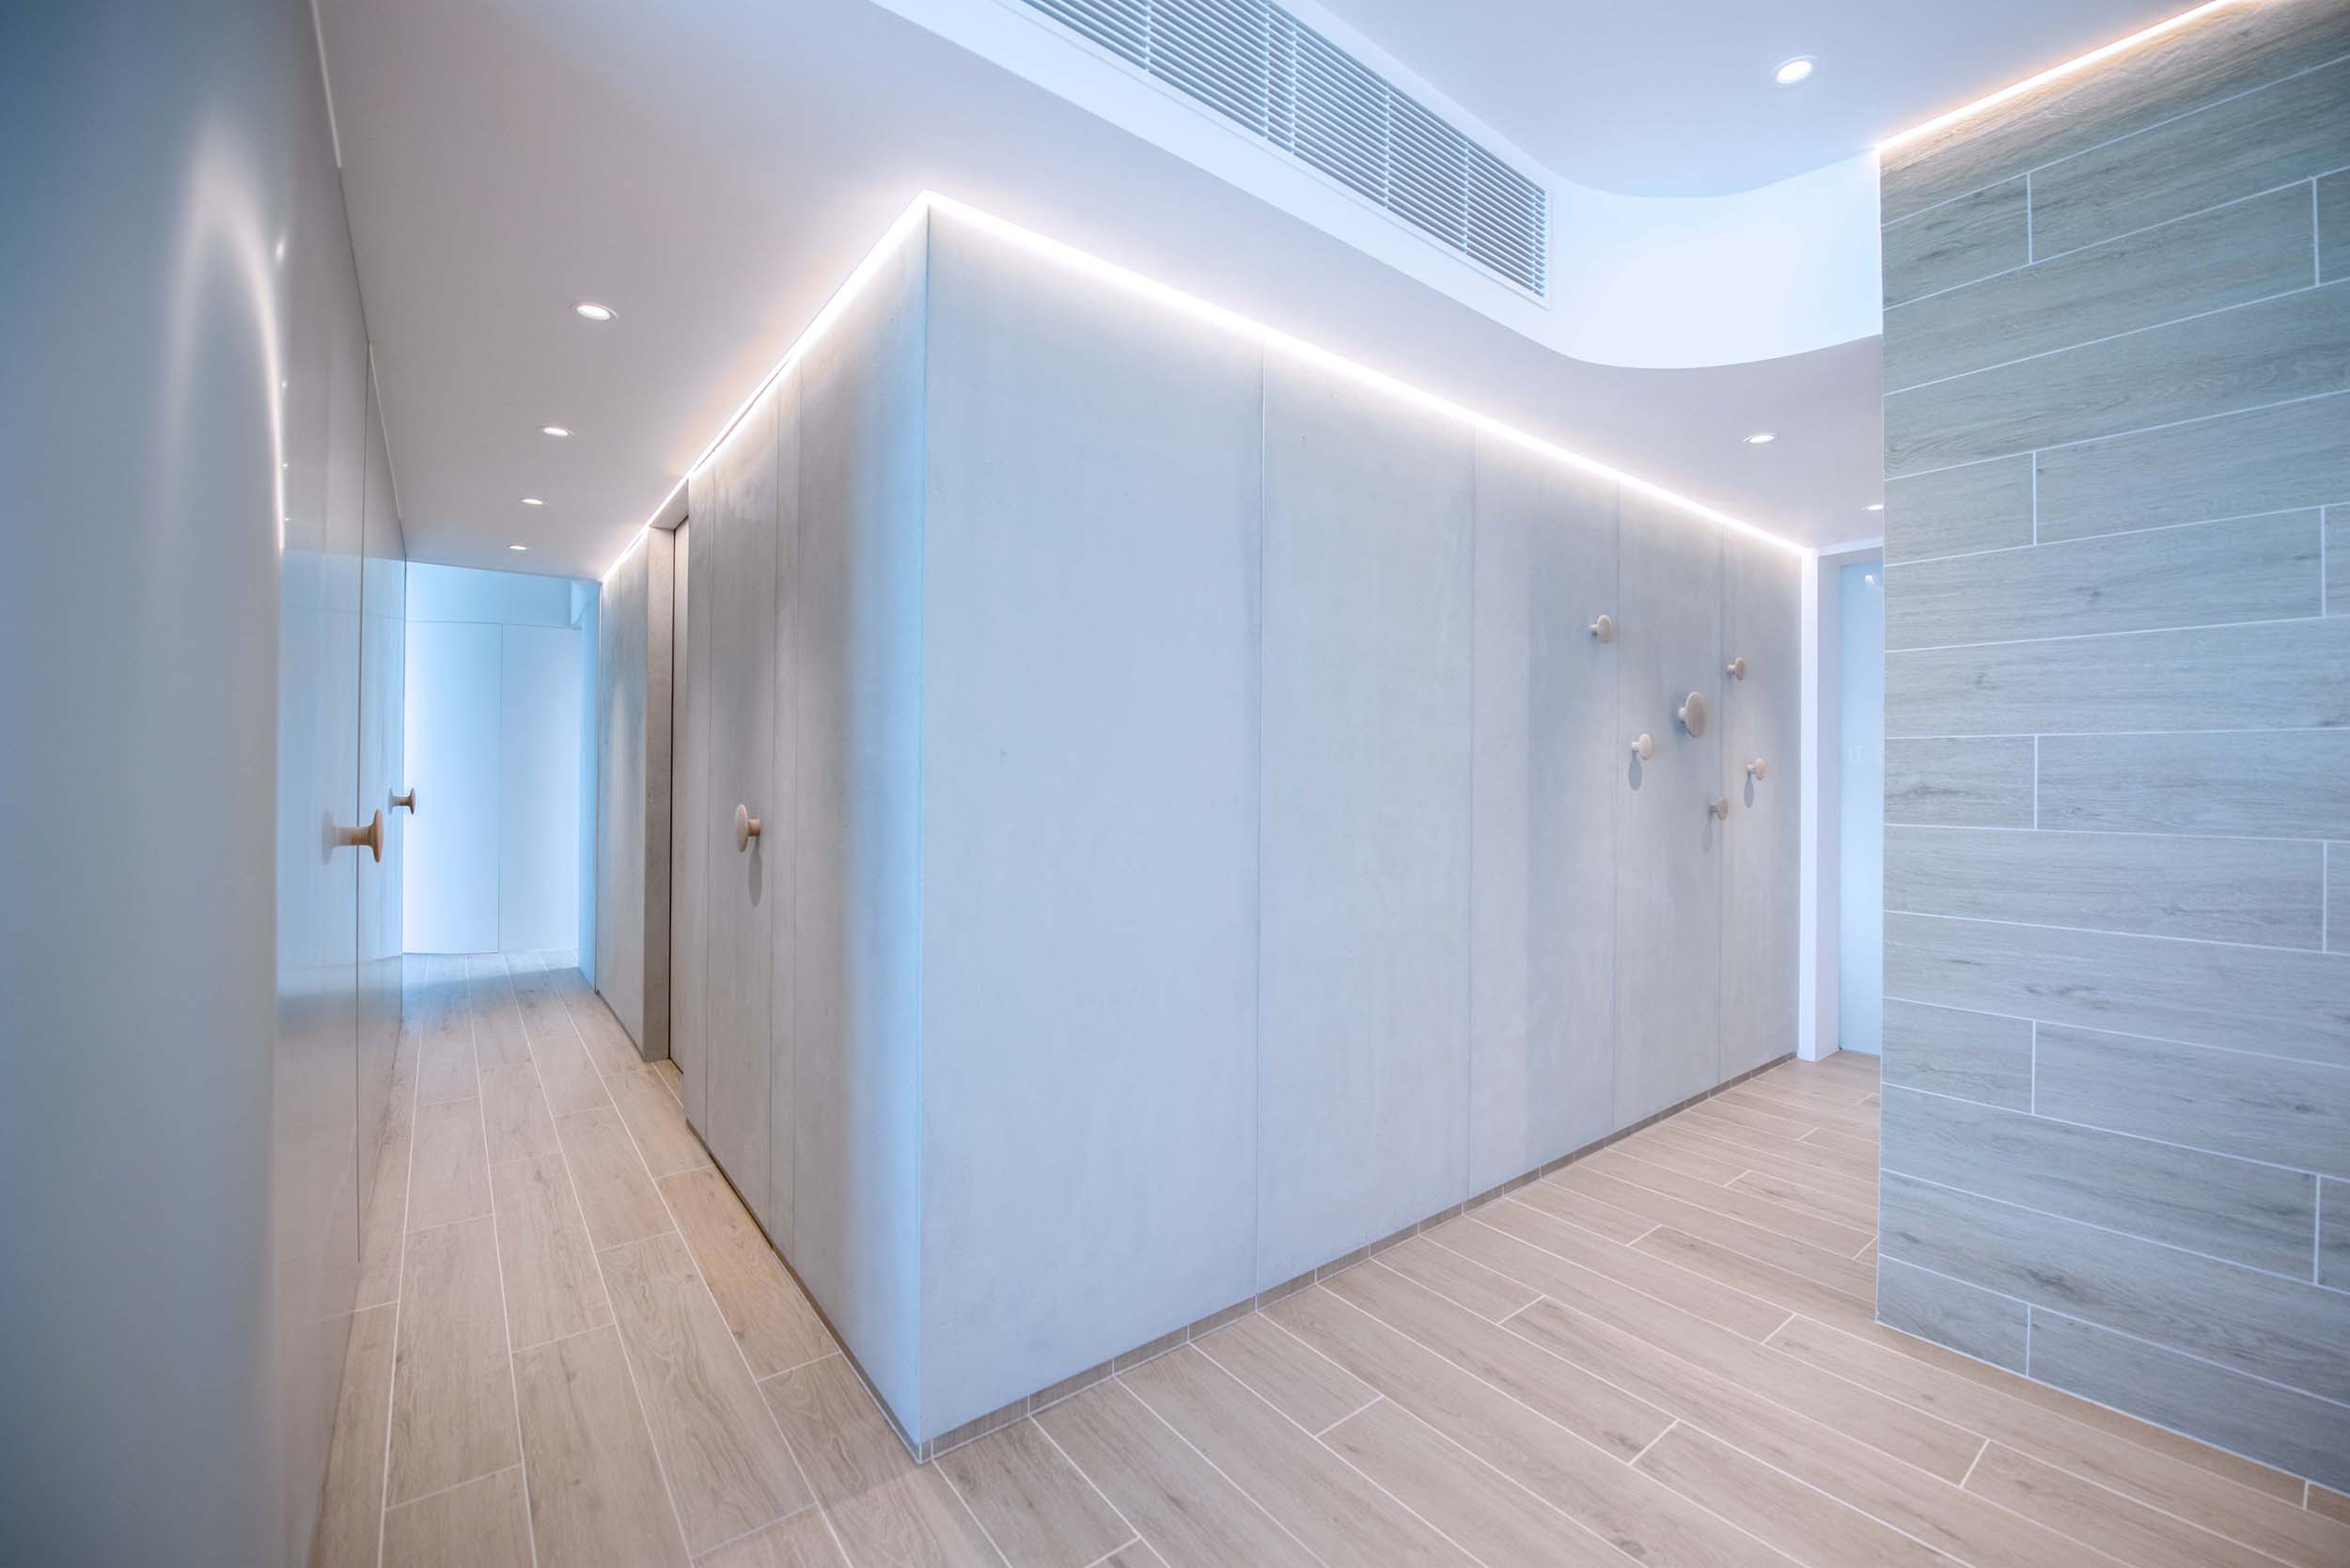 The second element is a rectilinear grey concrete volume that forms the other half of the apartment; it begins from the entrance foyer that forms the backdrop of the dinning area, and takes its solid form towards the master bedroom while concealing a guest shower room, a walk in storage, and a study room which is connected with the master bedroom suite. The result is an overall composition that allows the deepest spaces of the apartment to be fluidly connected to the entrance and kitchen, forming a sociable open atmosphere for the family.